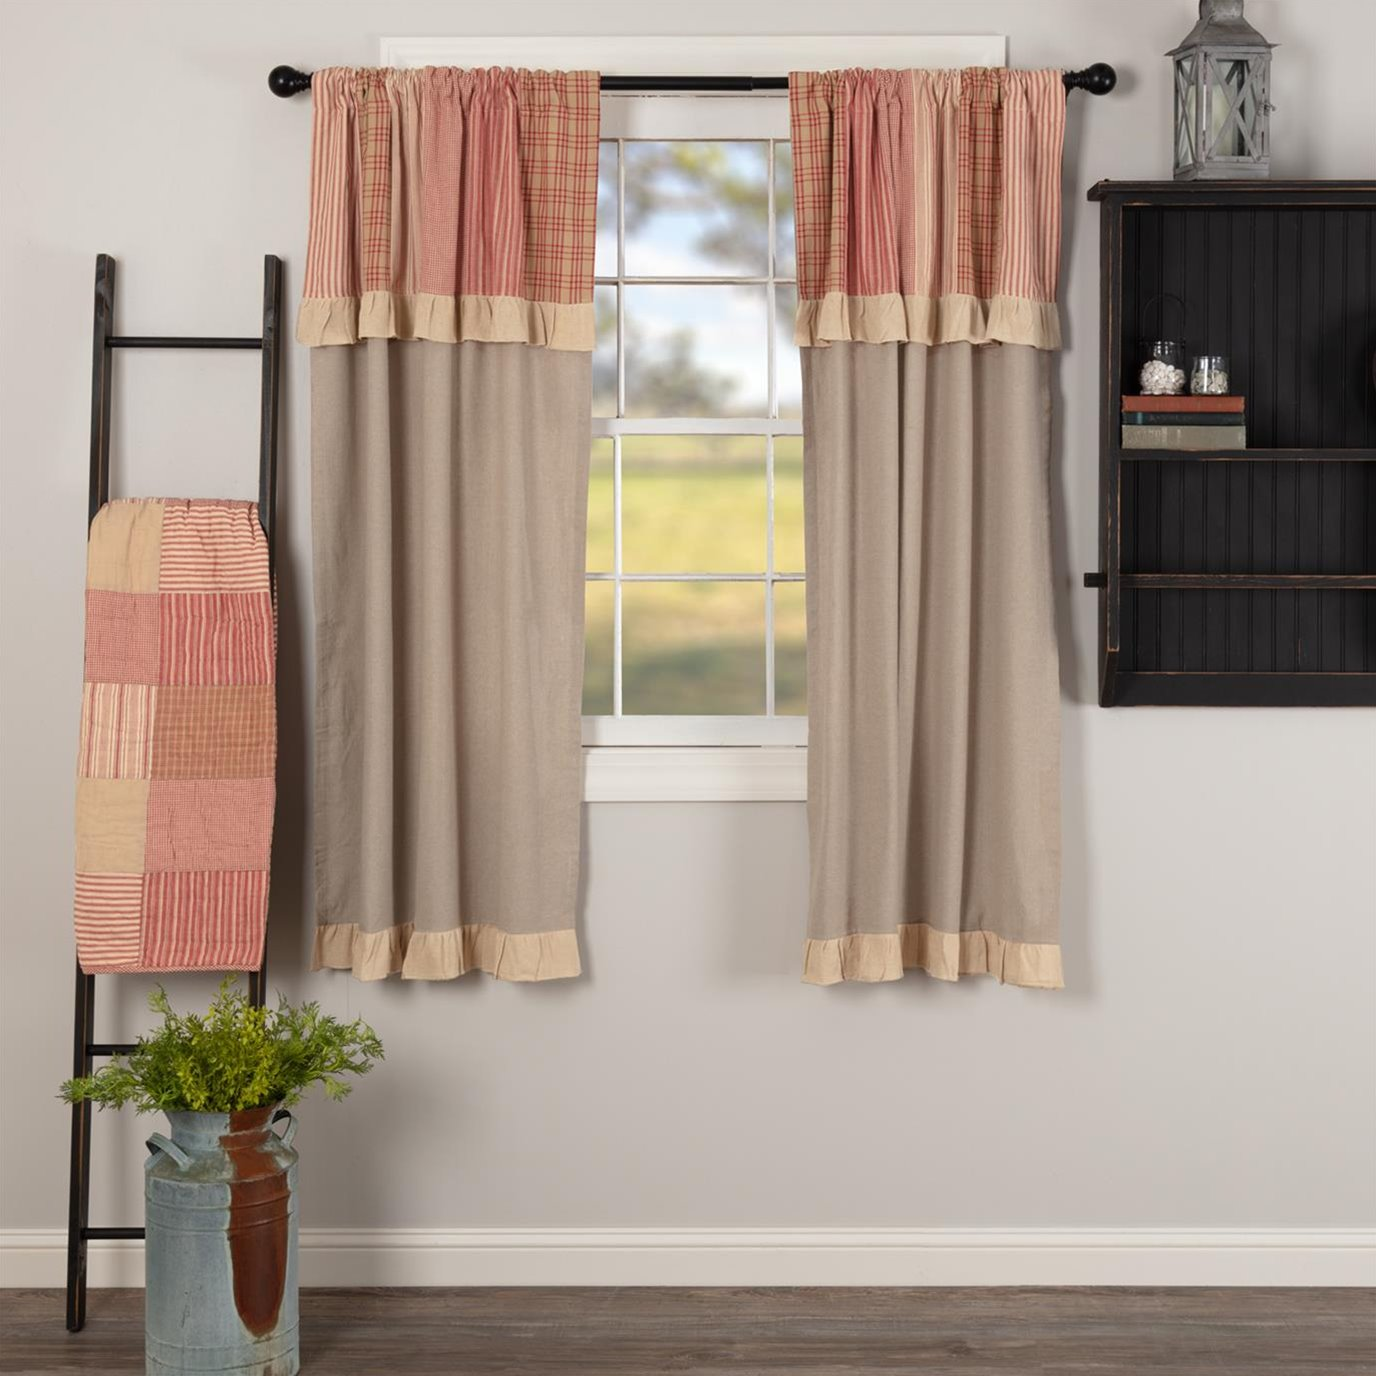 Sawyer Mill Red Short Panel with Attached Patchwork Valance Set of 2 63x36